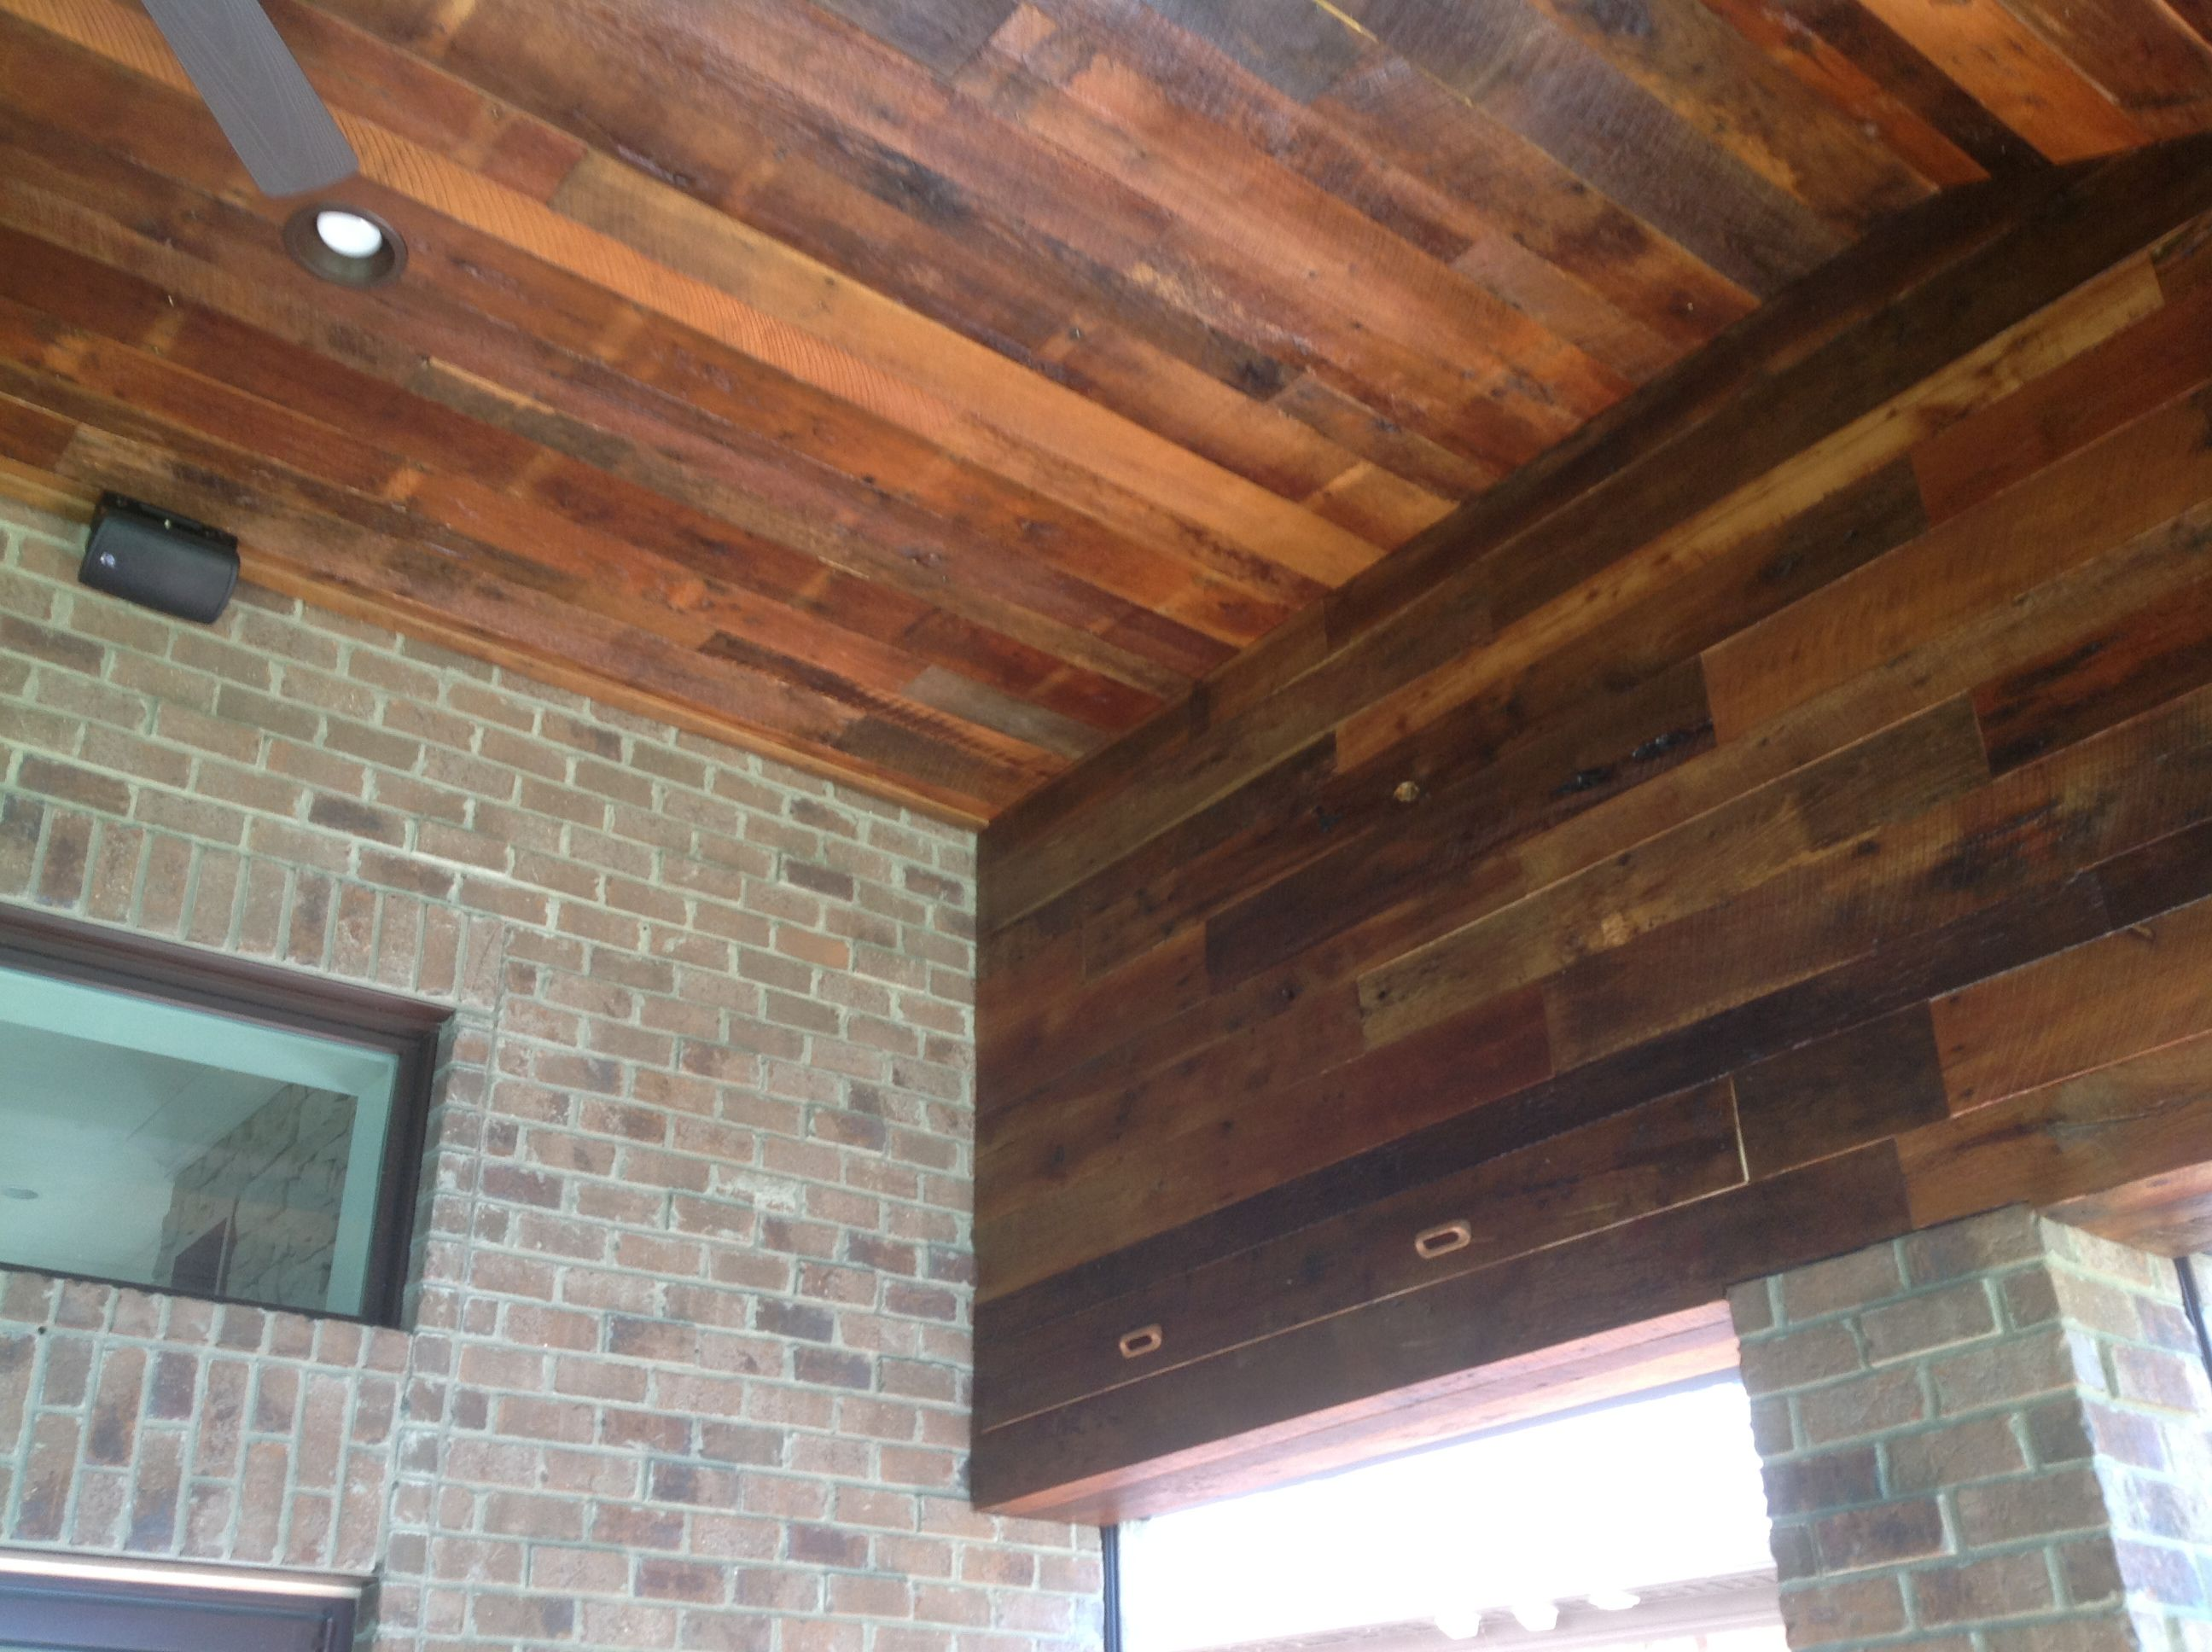 Reclaimed lumber skip planed oak ceiling reclaimedlumber for Reclaimed decking boards